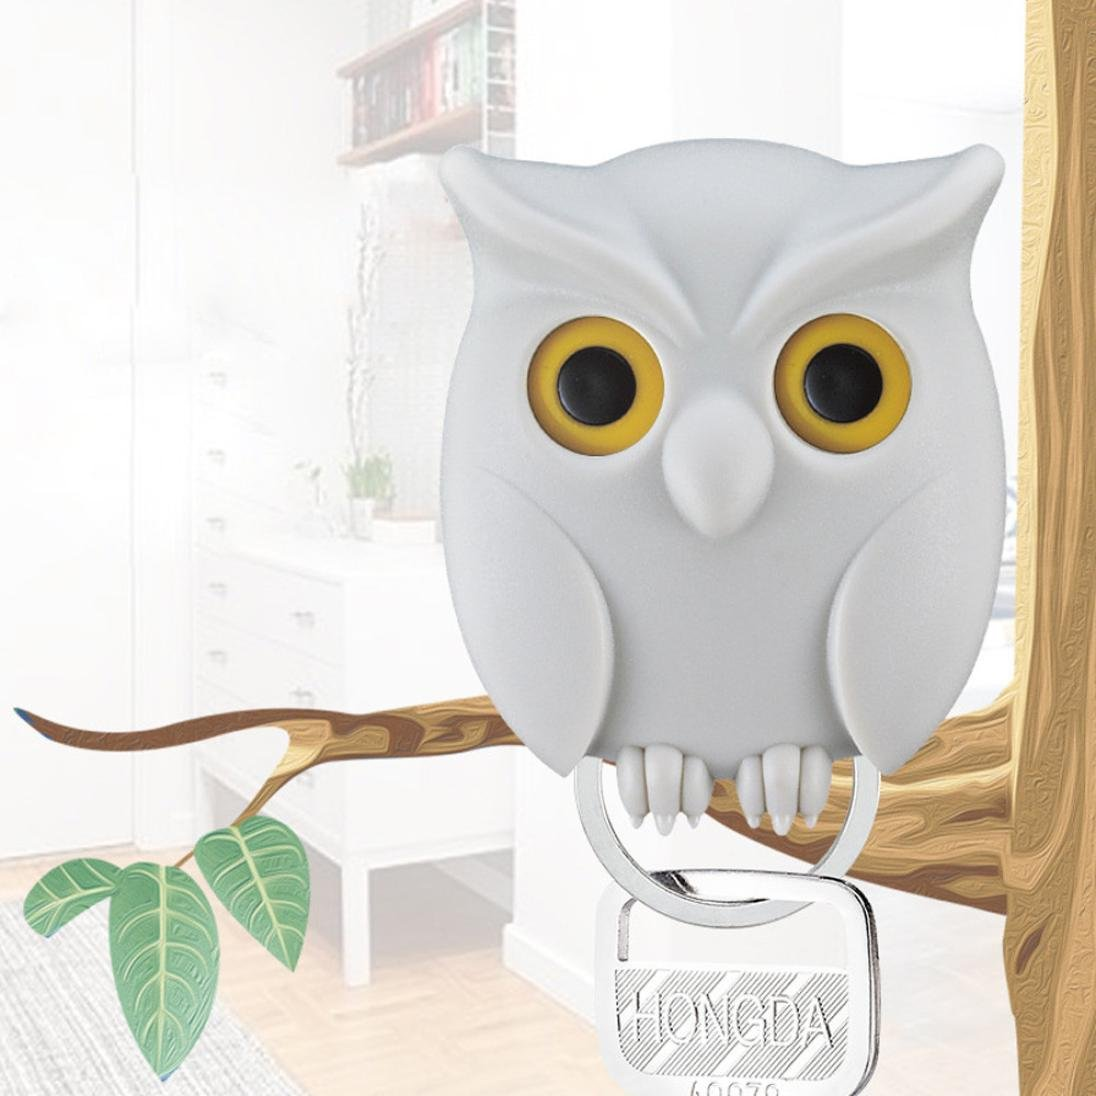 Get Quotations Highpot Night Owl Key Holder Wall Mounted Magnetic Creative Home Decor White